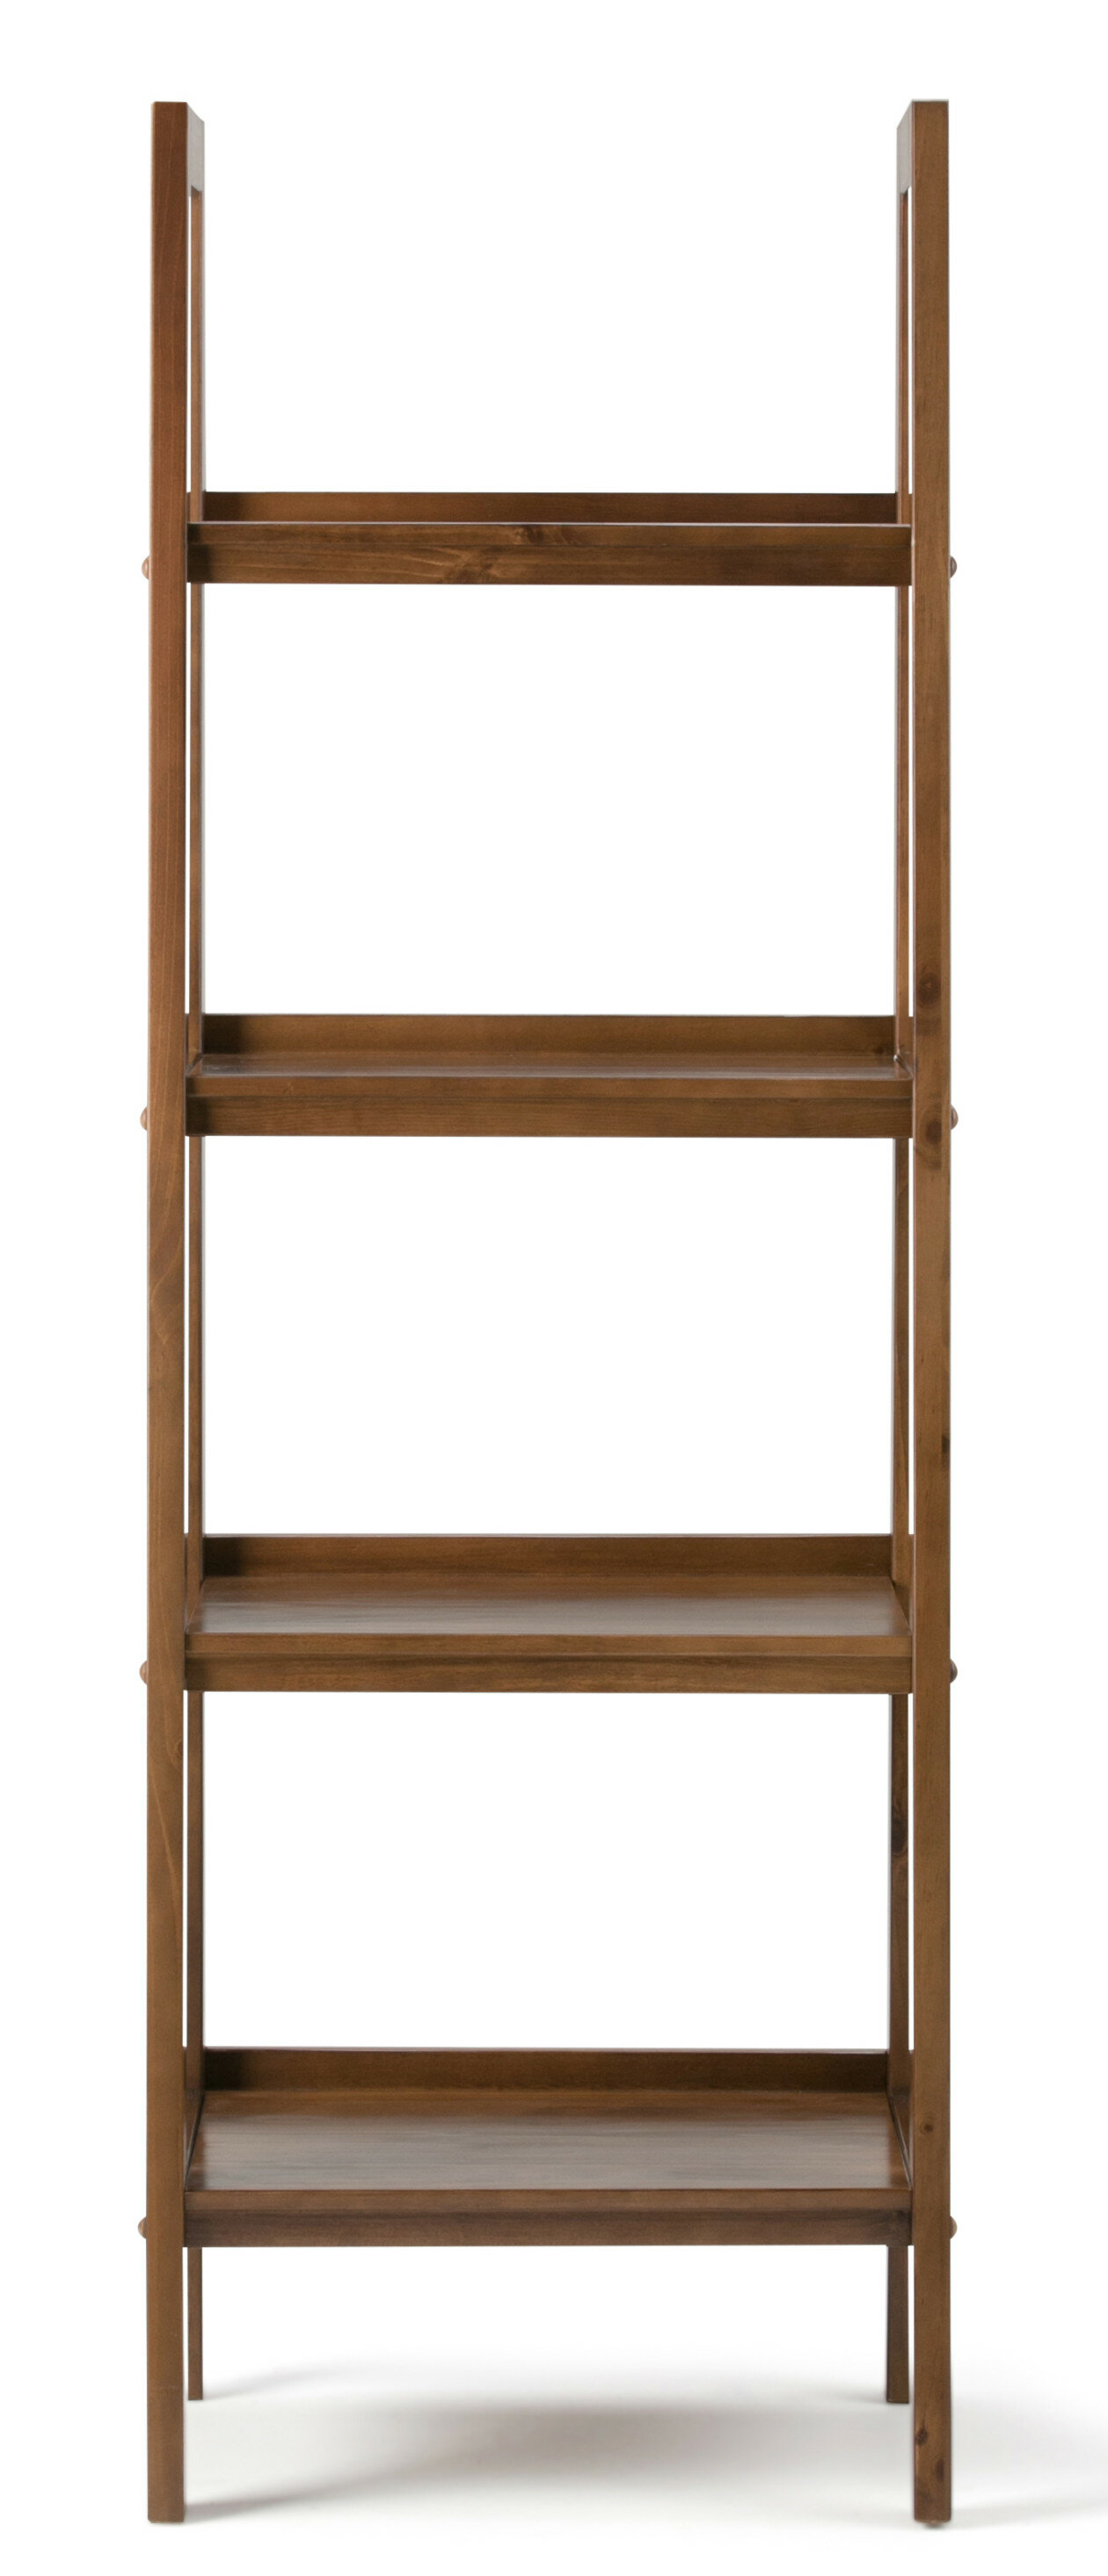 Enticing Bayside Furnishings Ladder Bookcase Officehom